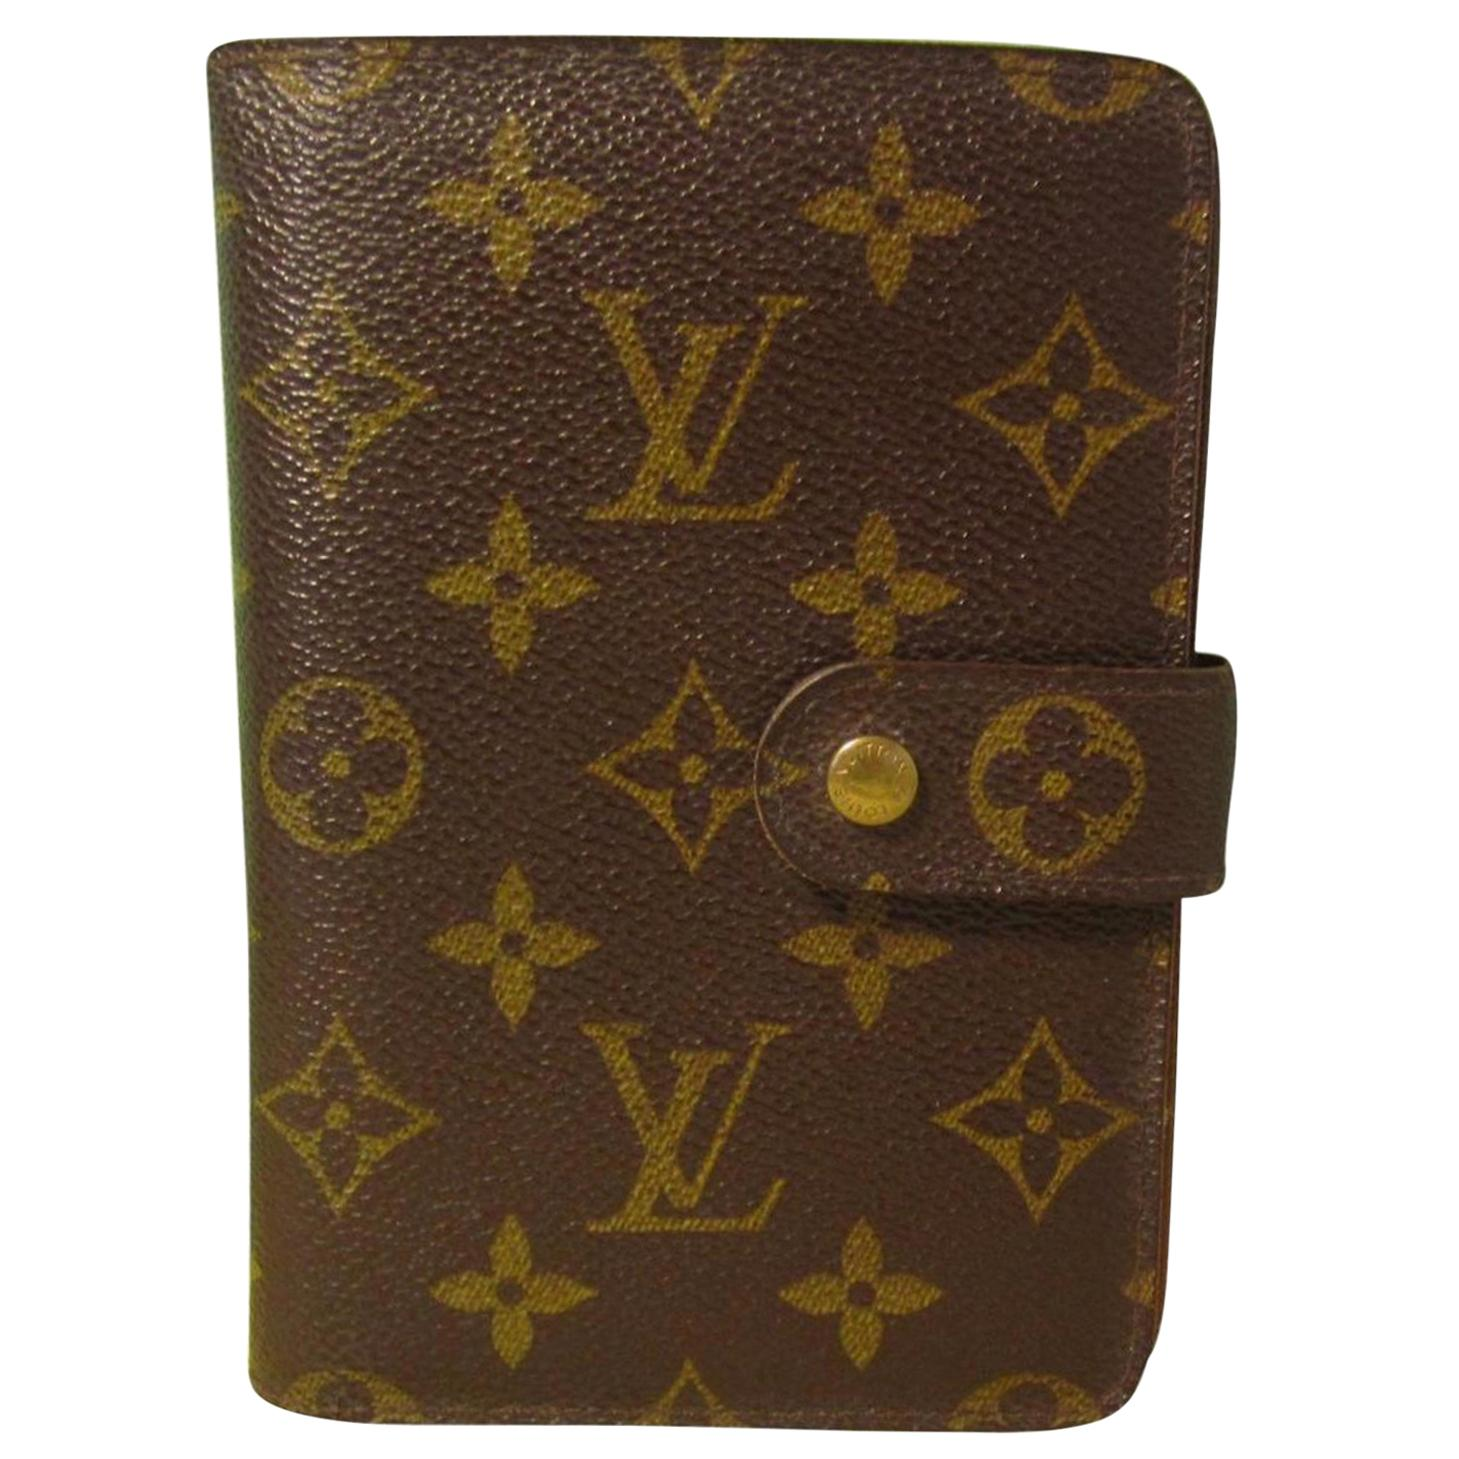 LOUIS VUITTON  Zippy Wallet Porto Papie Zip Brown Monogram, Bifold Women Wallet